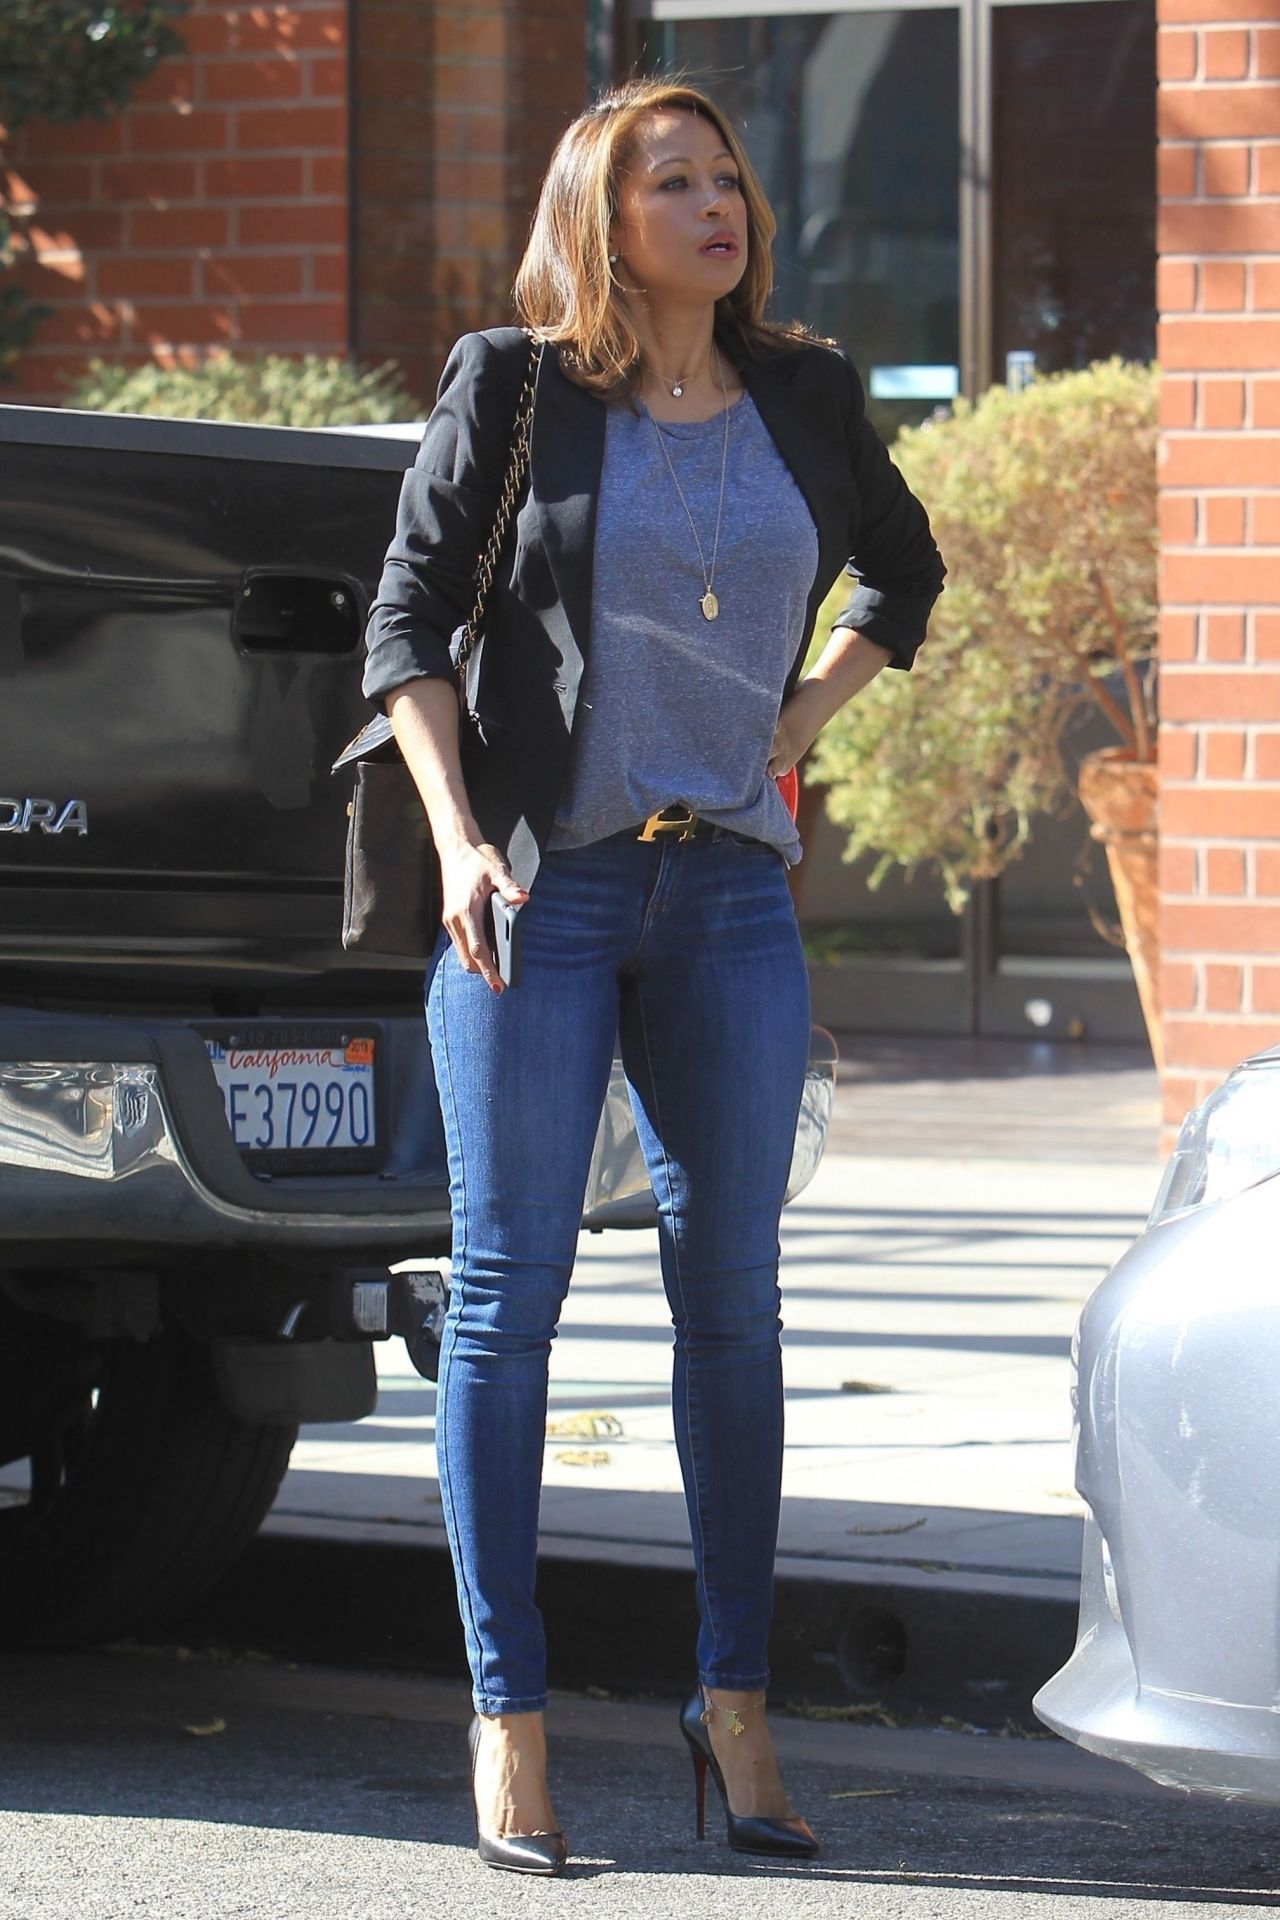 Stacey Dash Shopping In Beverly Hills 01 31 2018